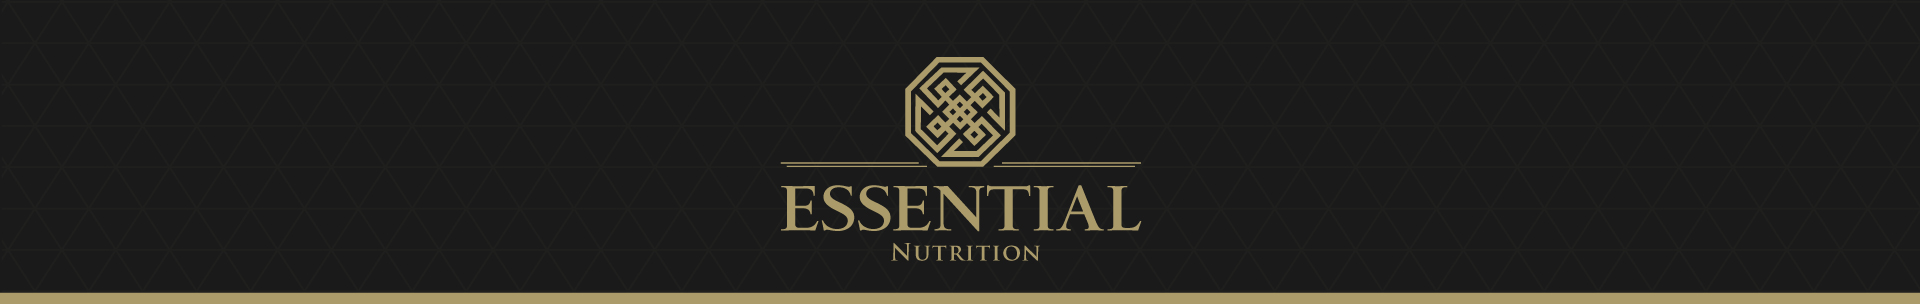 E_PHARMA-02-home-logo-essential-Nutrition(1)